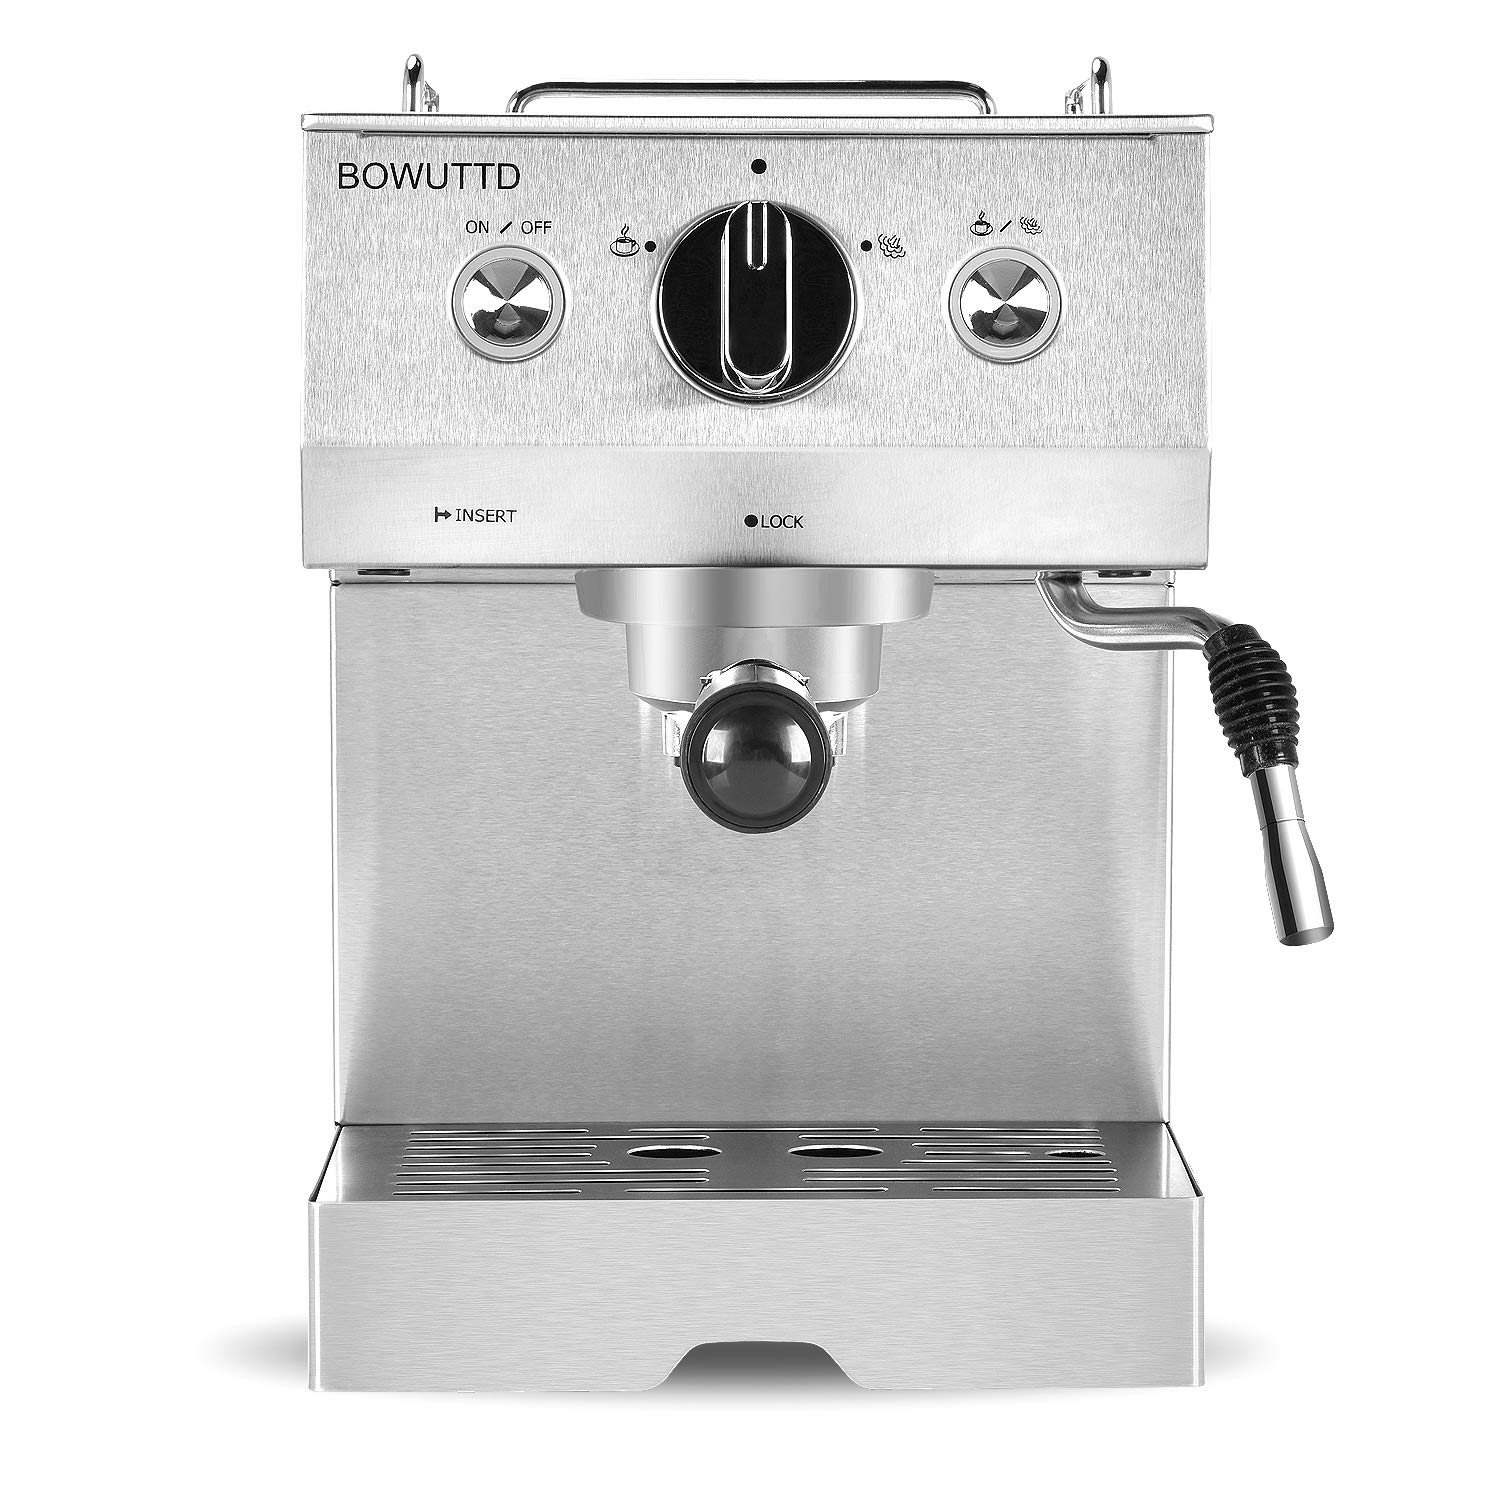 BOWUTTD Espresso Machine Coffee Maker, 1.25L Coffee Machine,Cappuccino, Latte, Moka and Espresso Maker with Milk Frothing Arm for Home and Office, 1050W, 15 Bar Pump, Silver/Stainless Steel by BOWUTTD